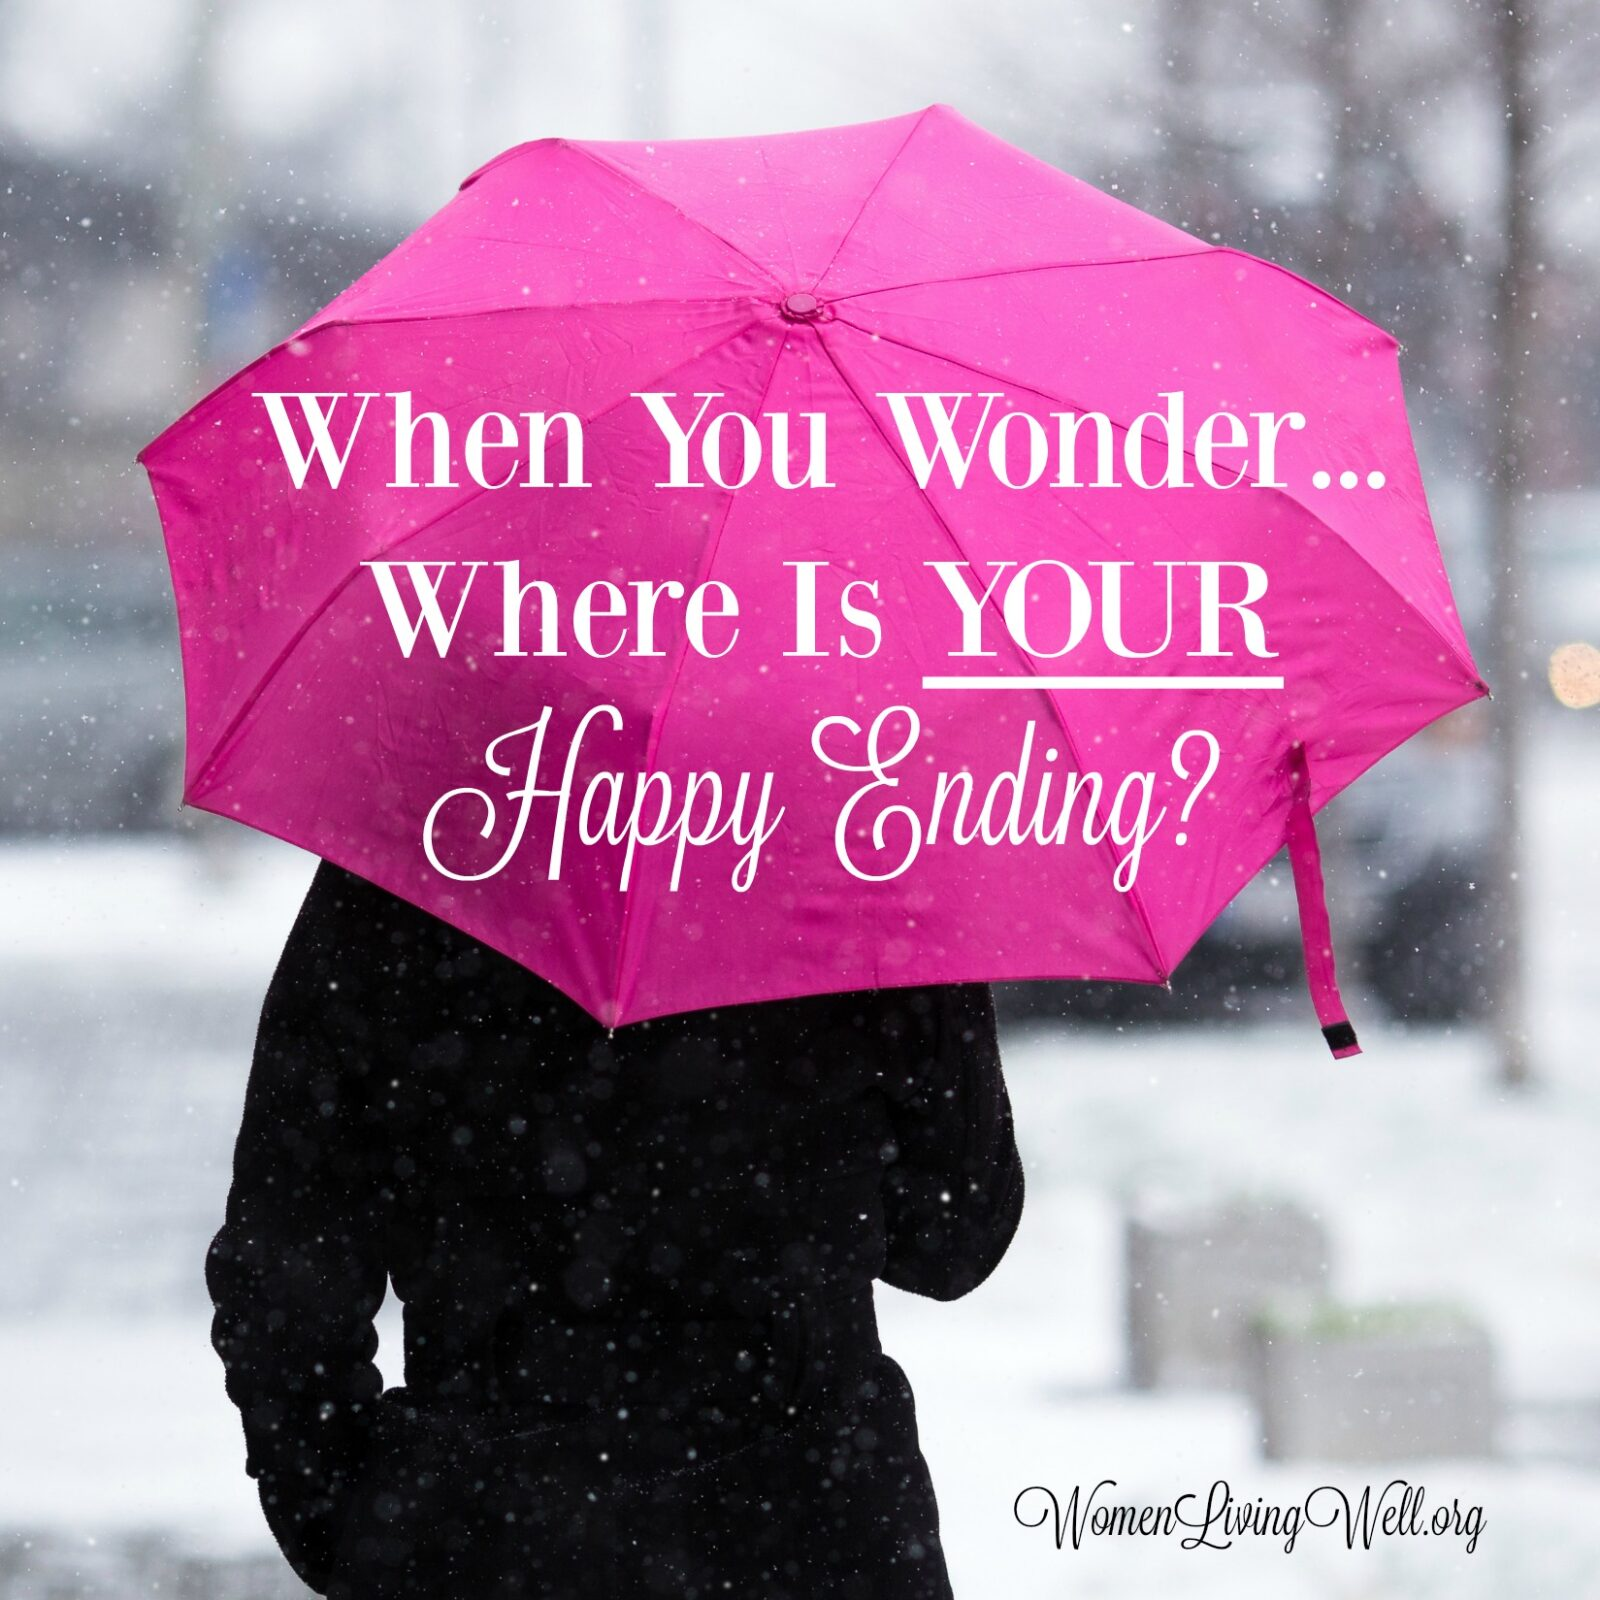 When You Wonder...Where Is Your Happy Ending? - Women Living Well